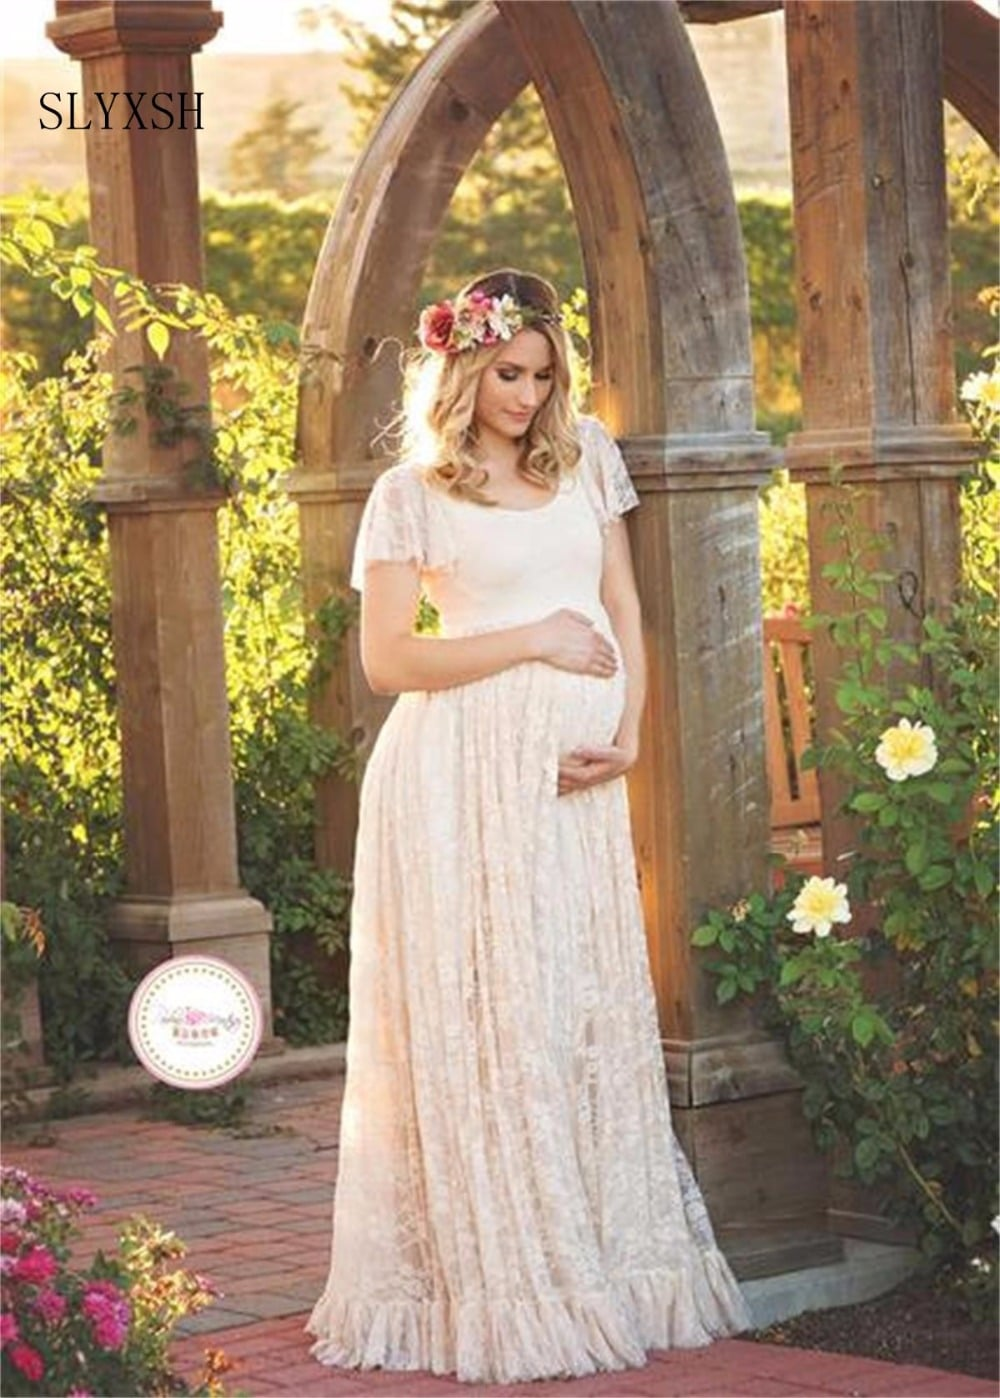 SLYXSHNew Maternity Photography Props Pregnancy Clothes Maternity ...